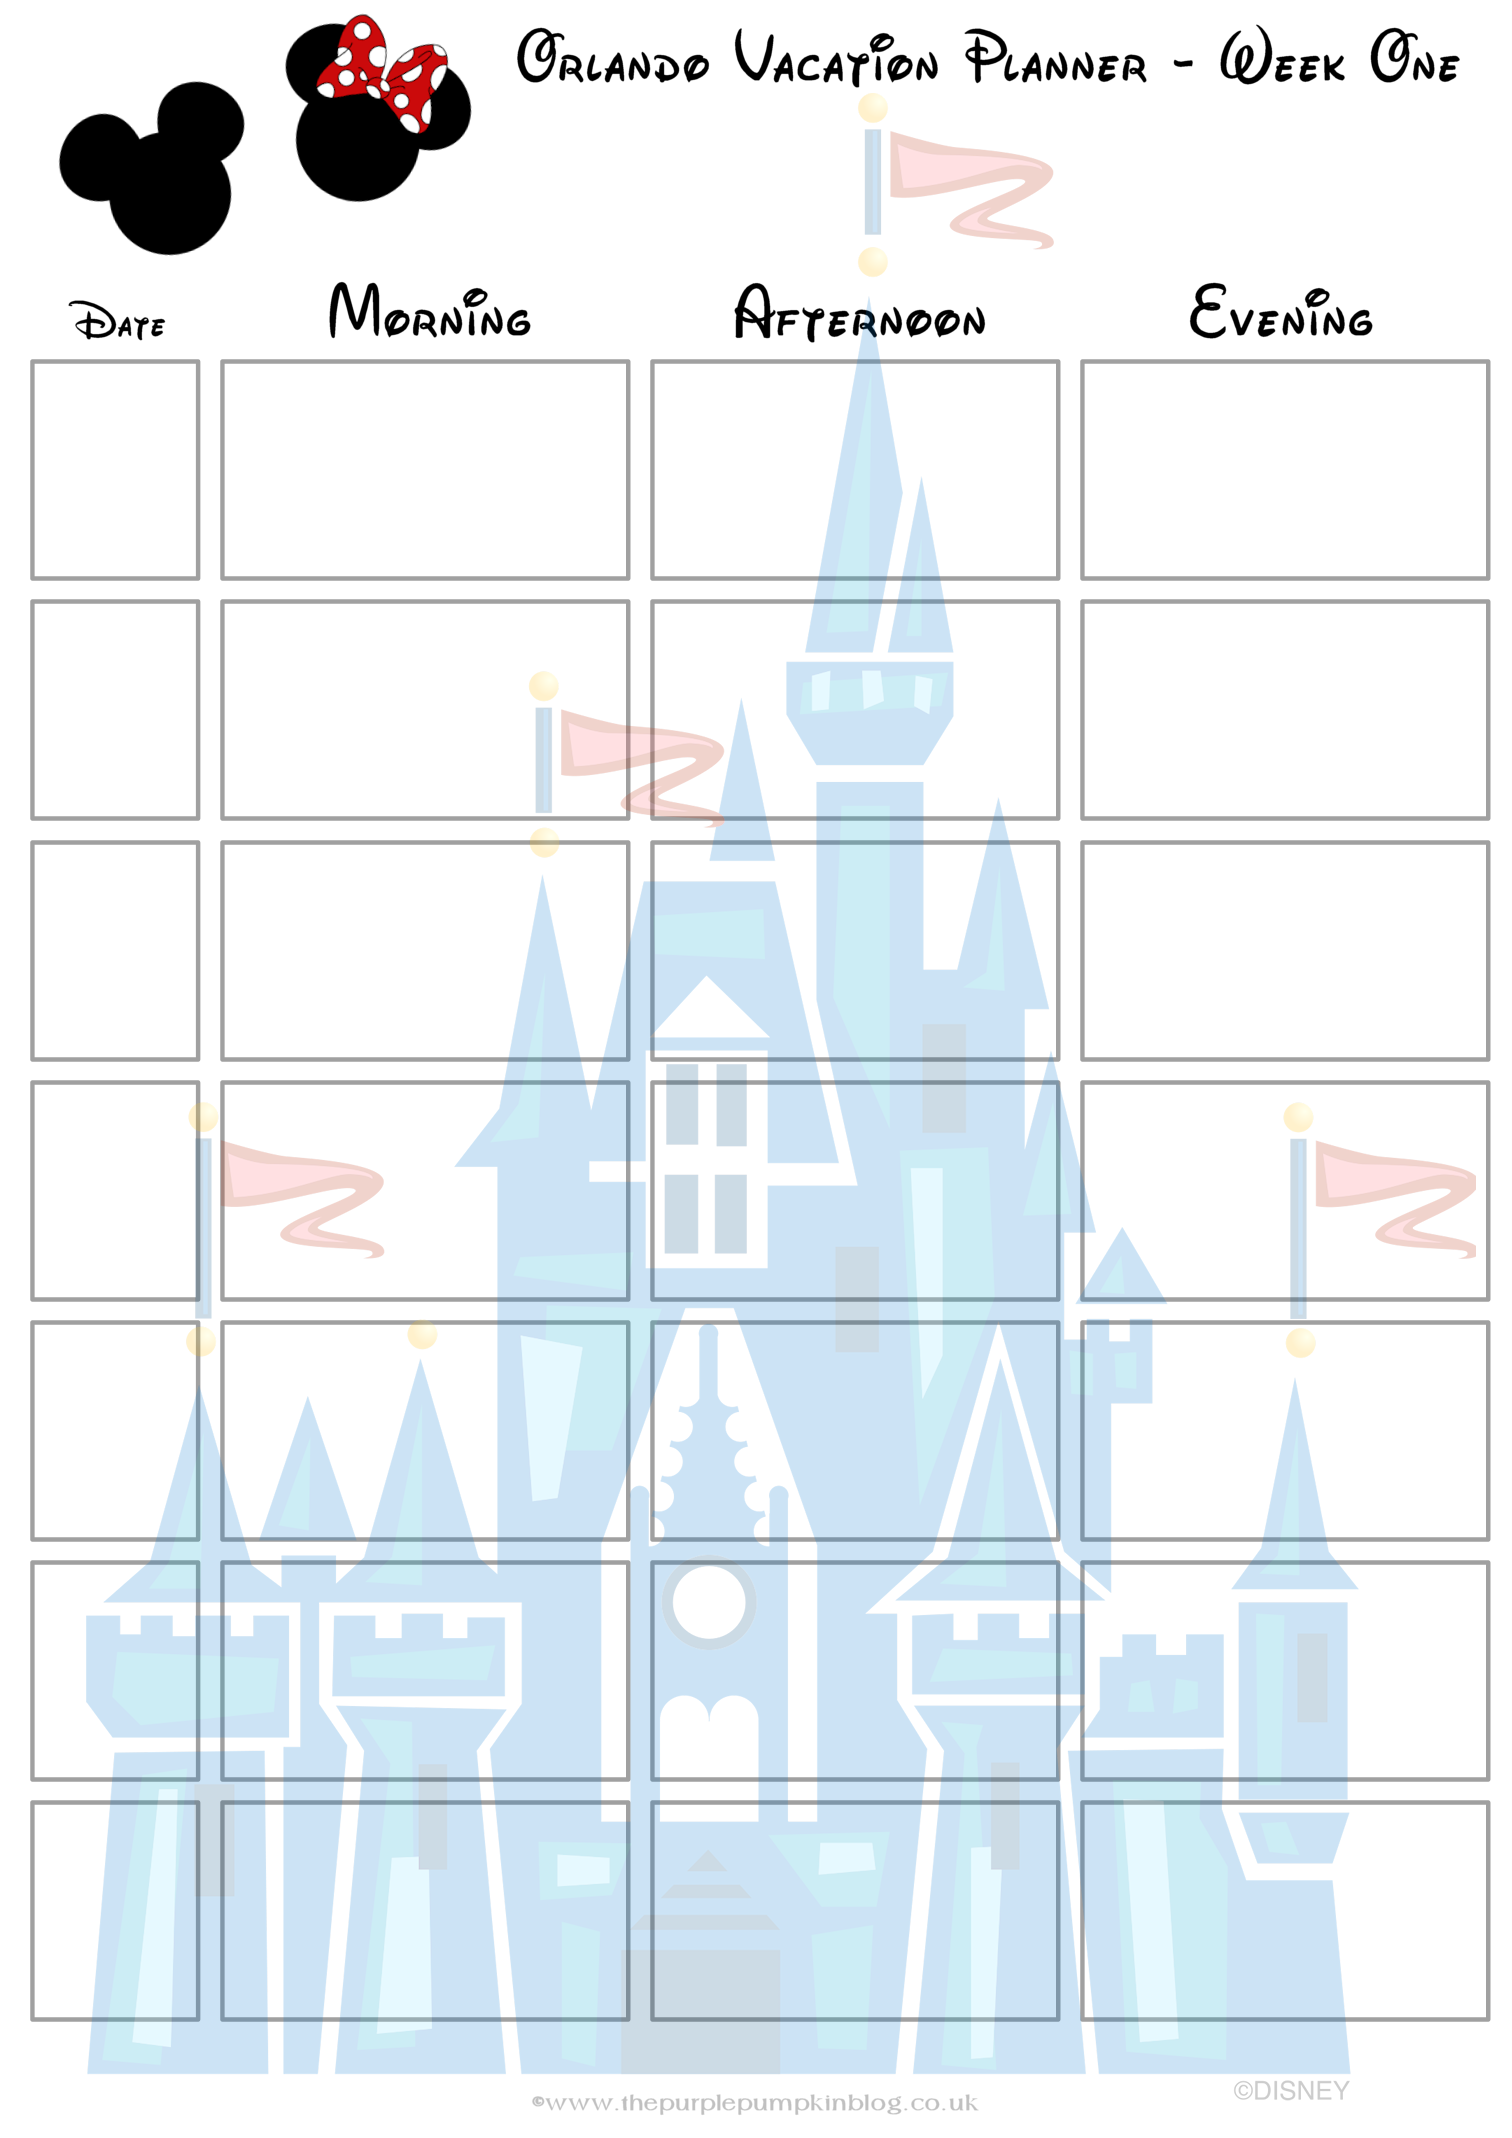 Orlando walt disney world vacation planner free printable week 1 publicscrutiny Images